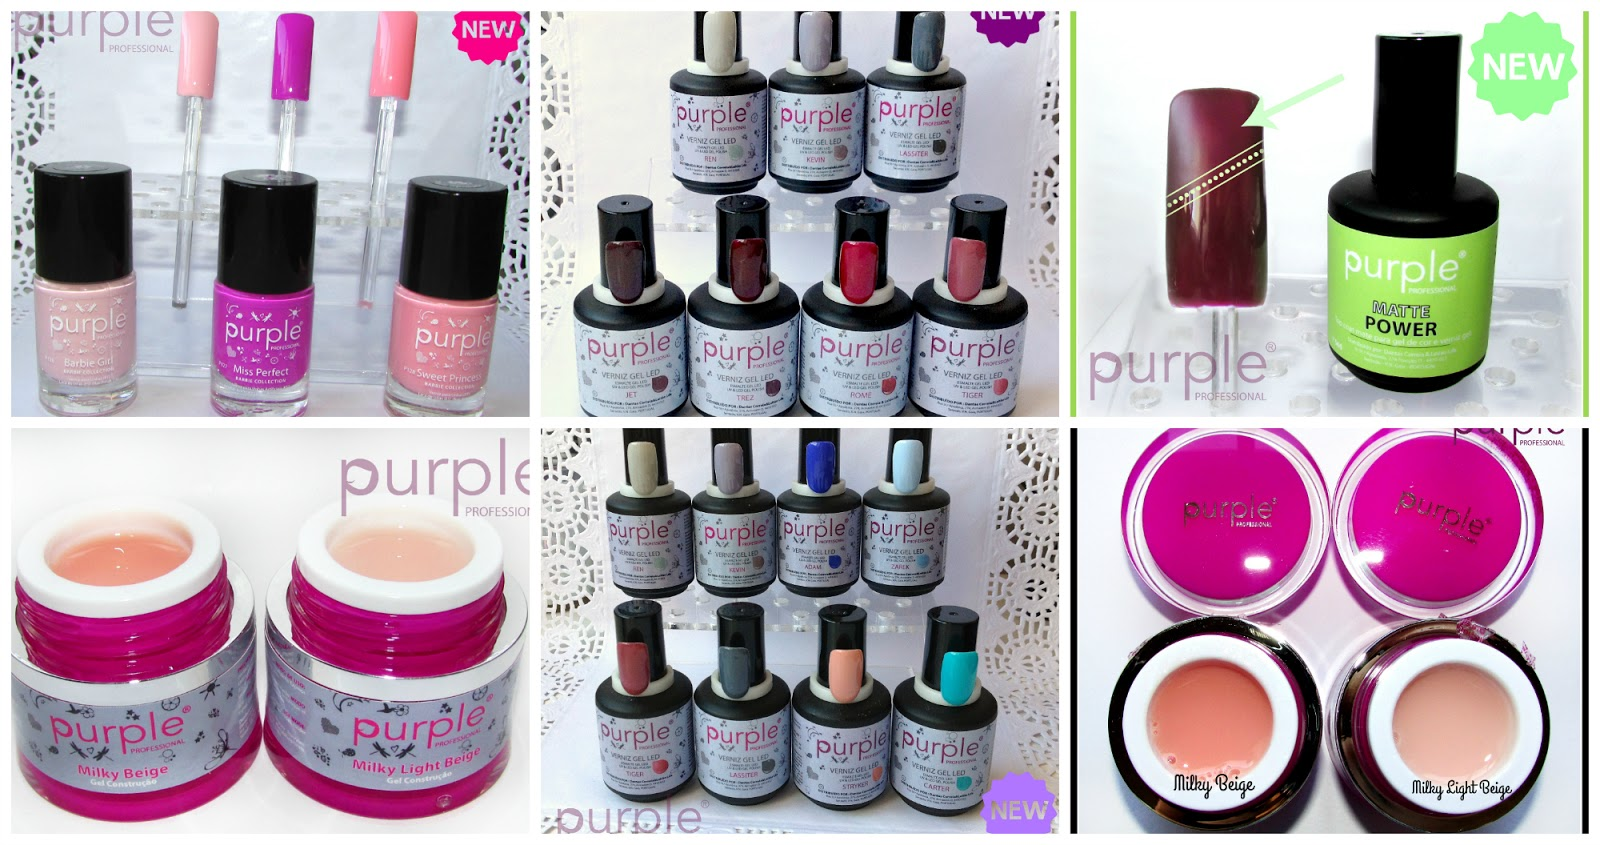 Novidades Purple Professional - Gel Polish, Builder Gel, Nail ...